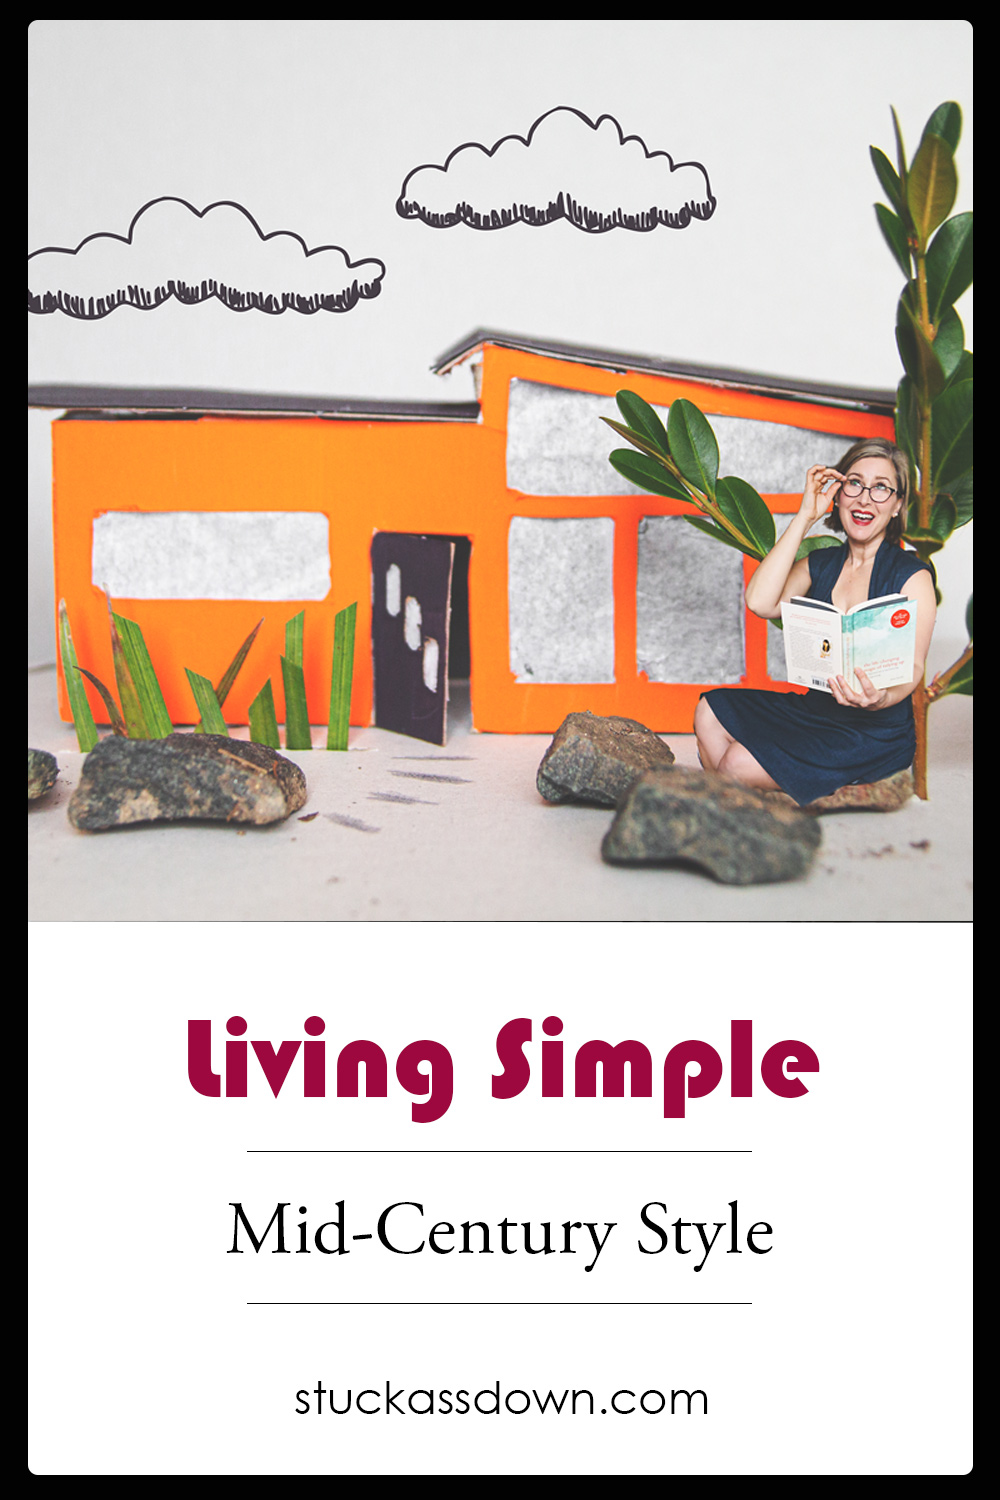 Living Simple Mid-Century Style